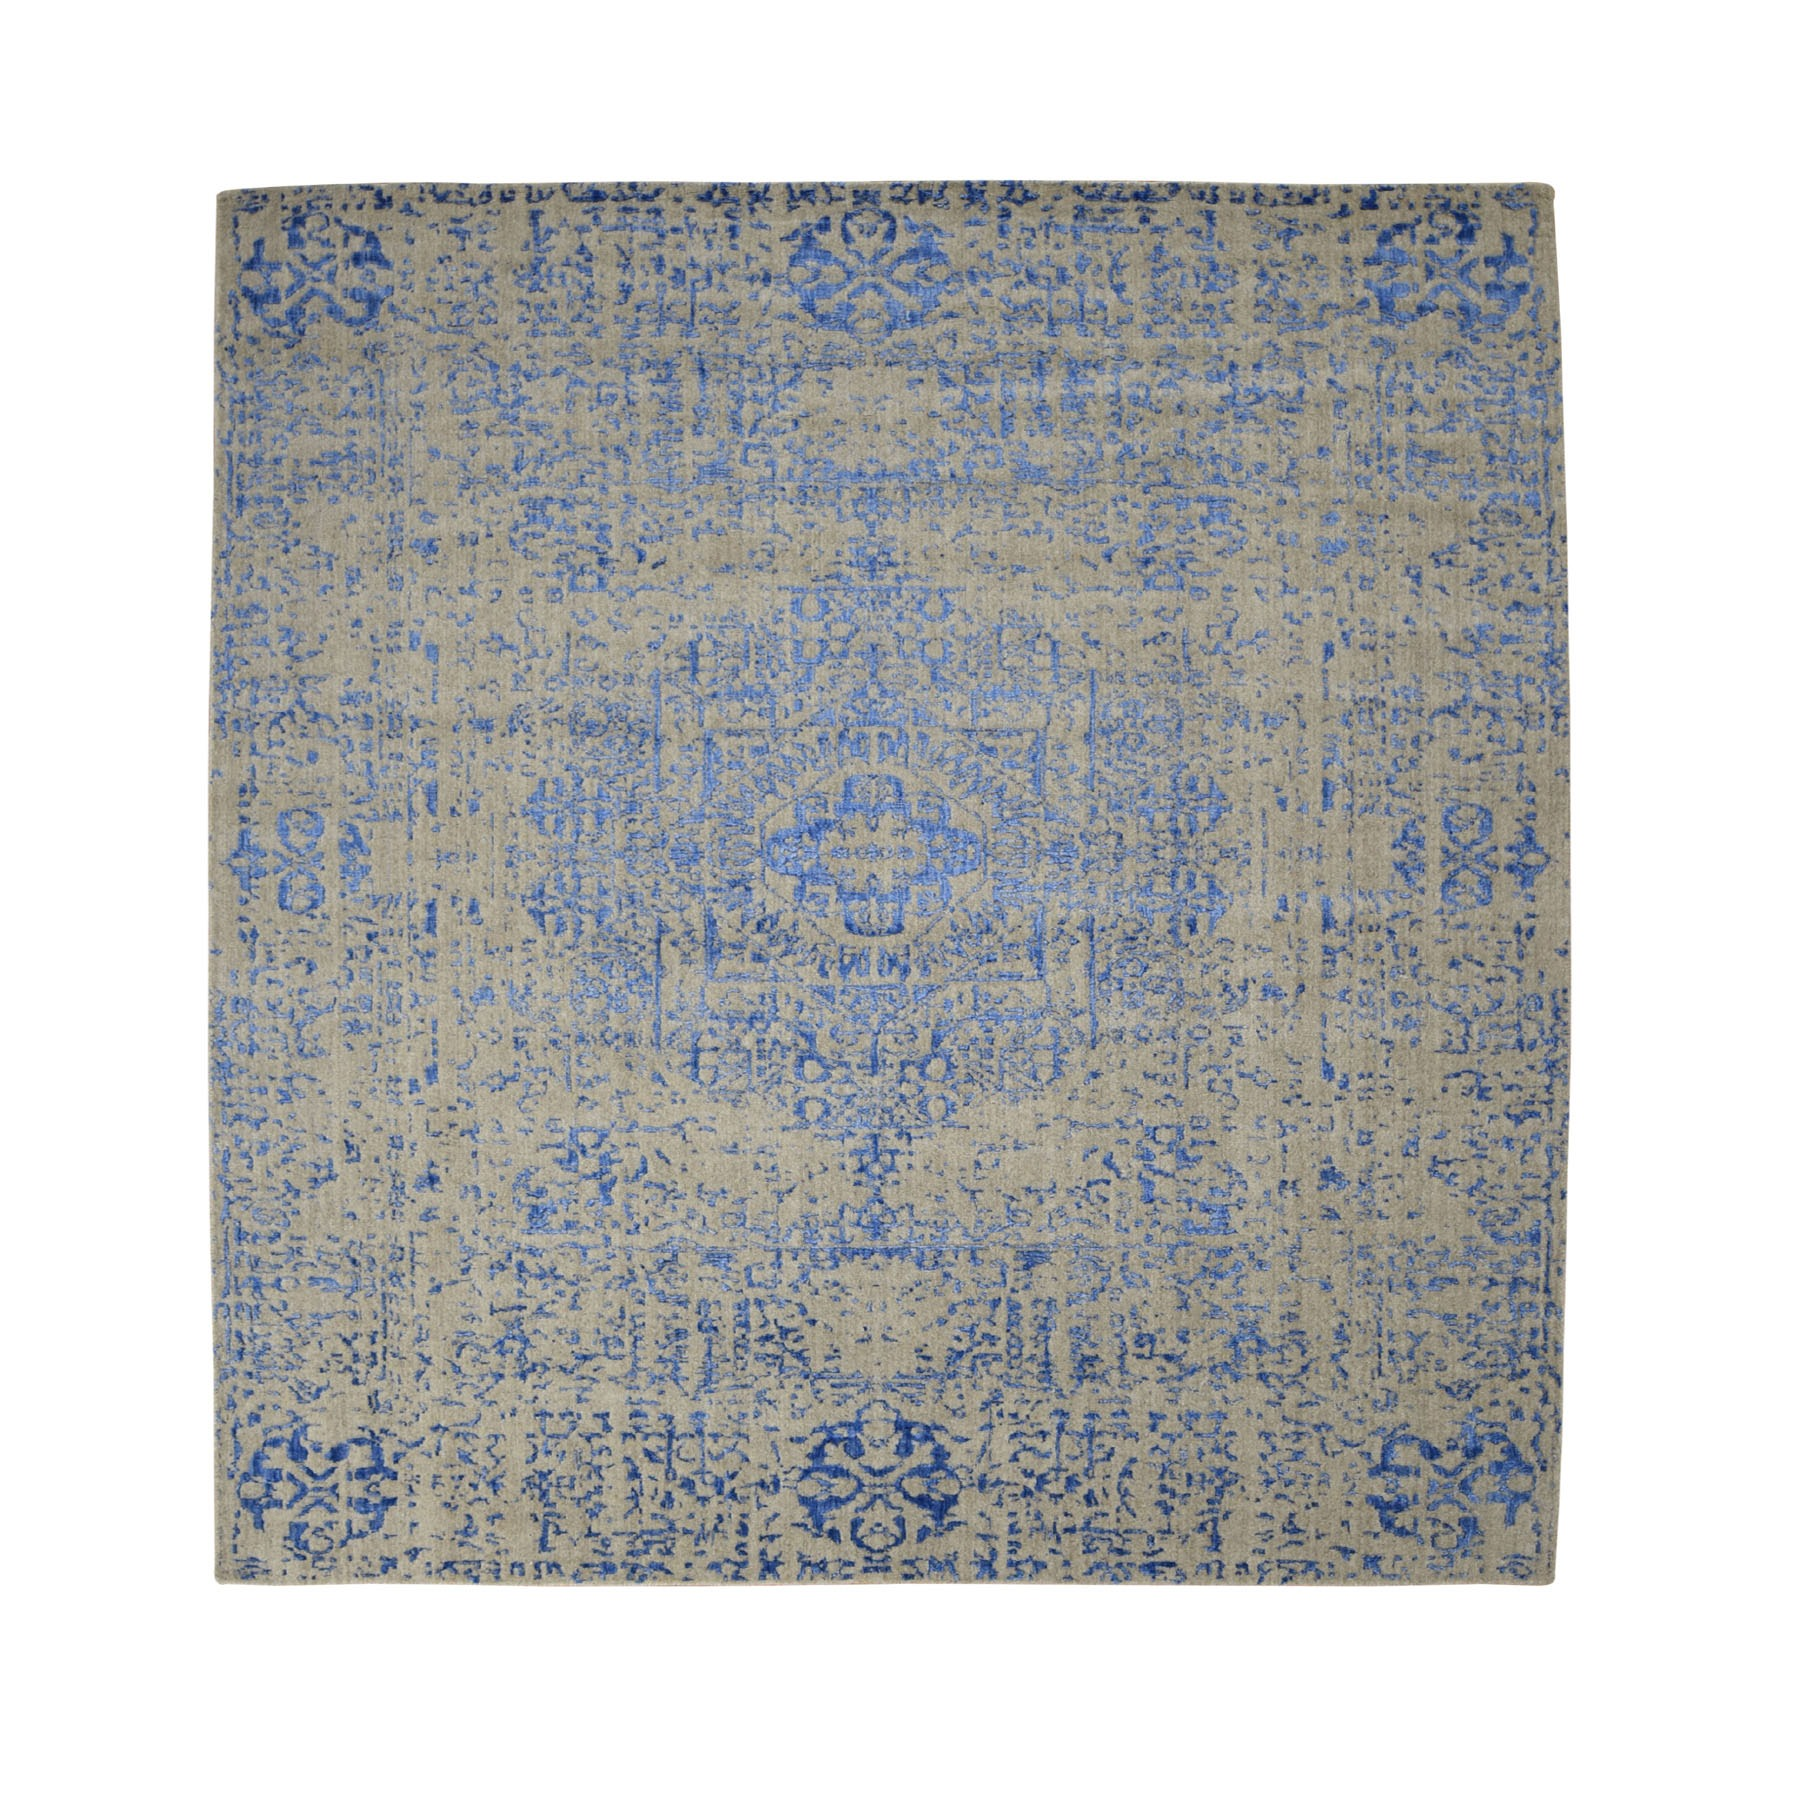 8'x8' Gray Hand Loomed Wool And Art Silk Mamluk Design Square Oriental Rug